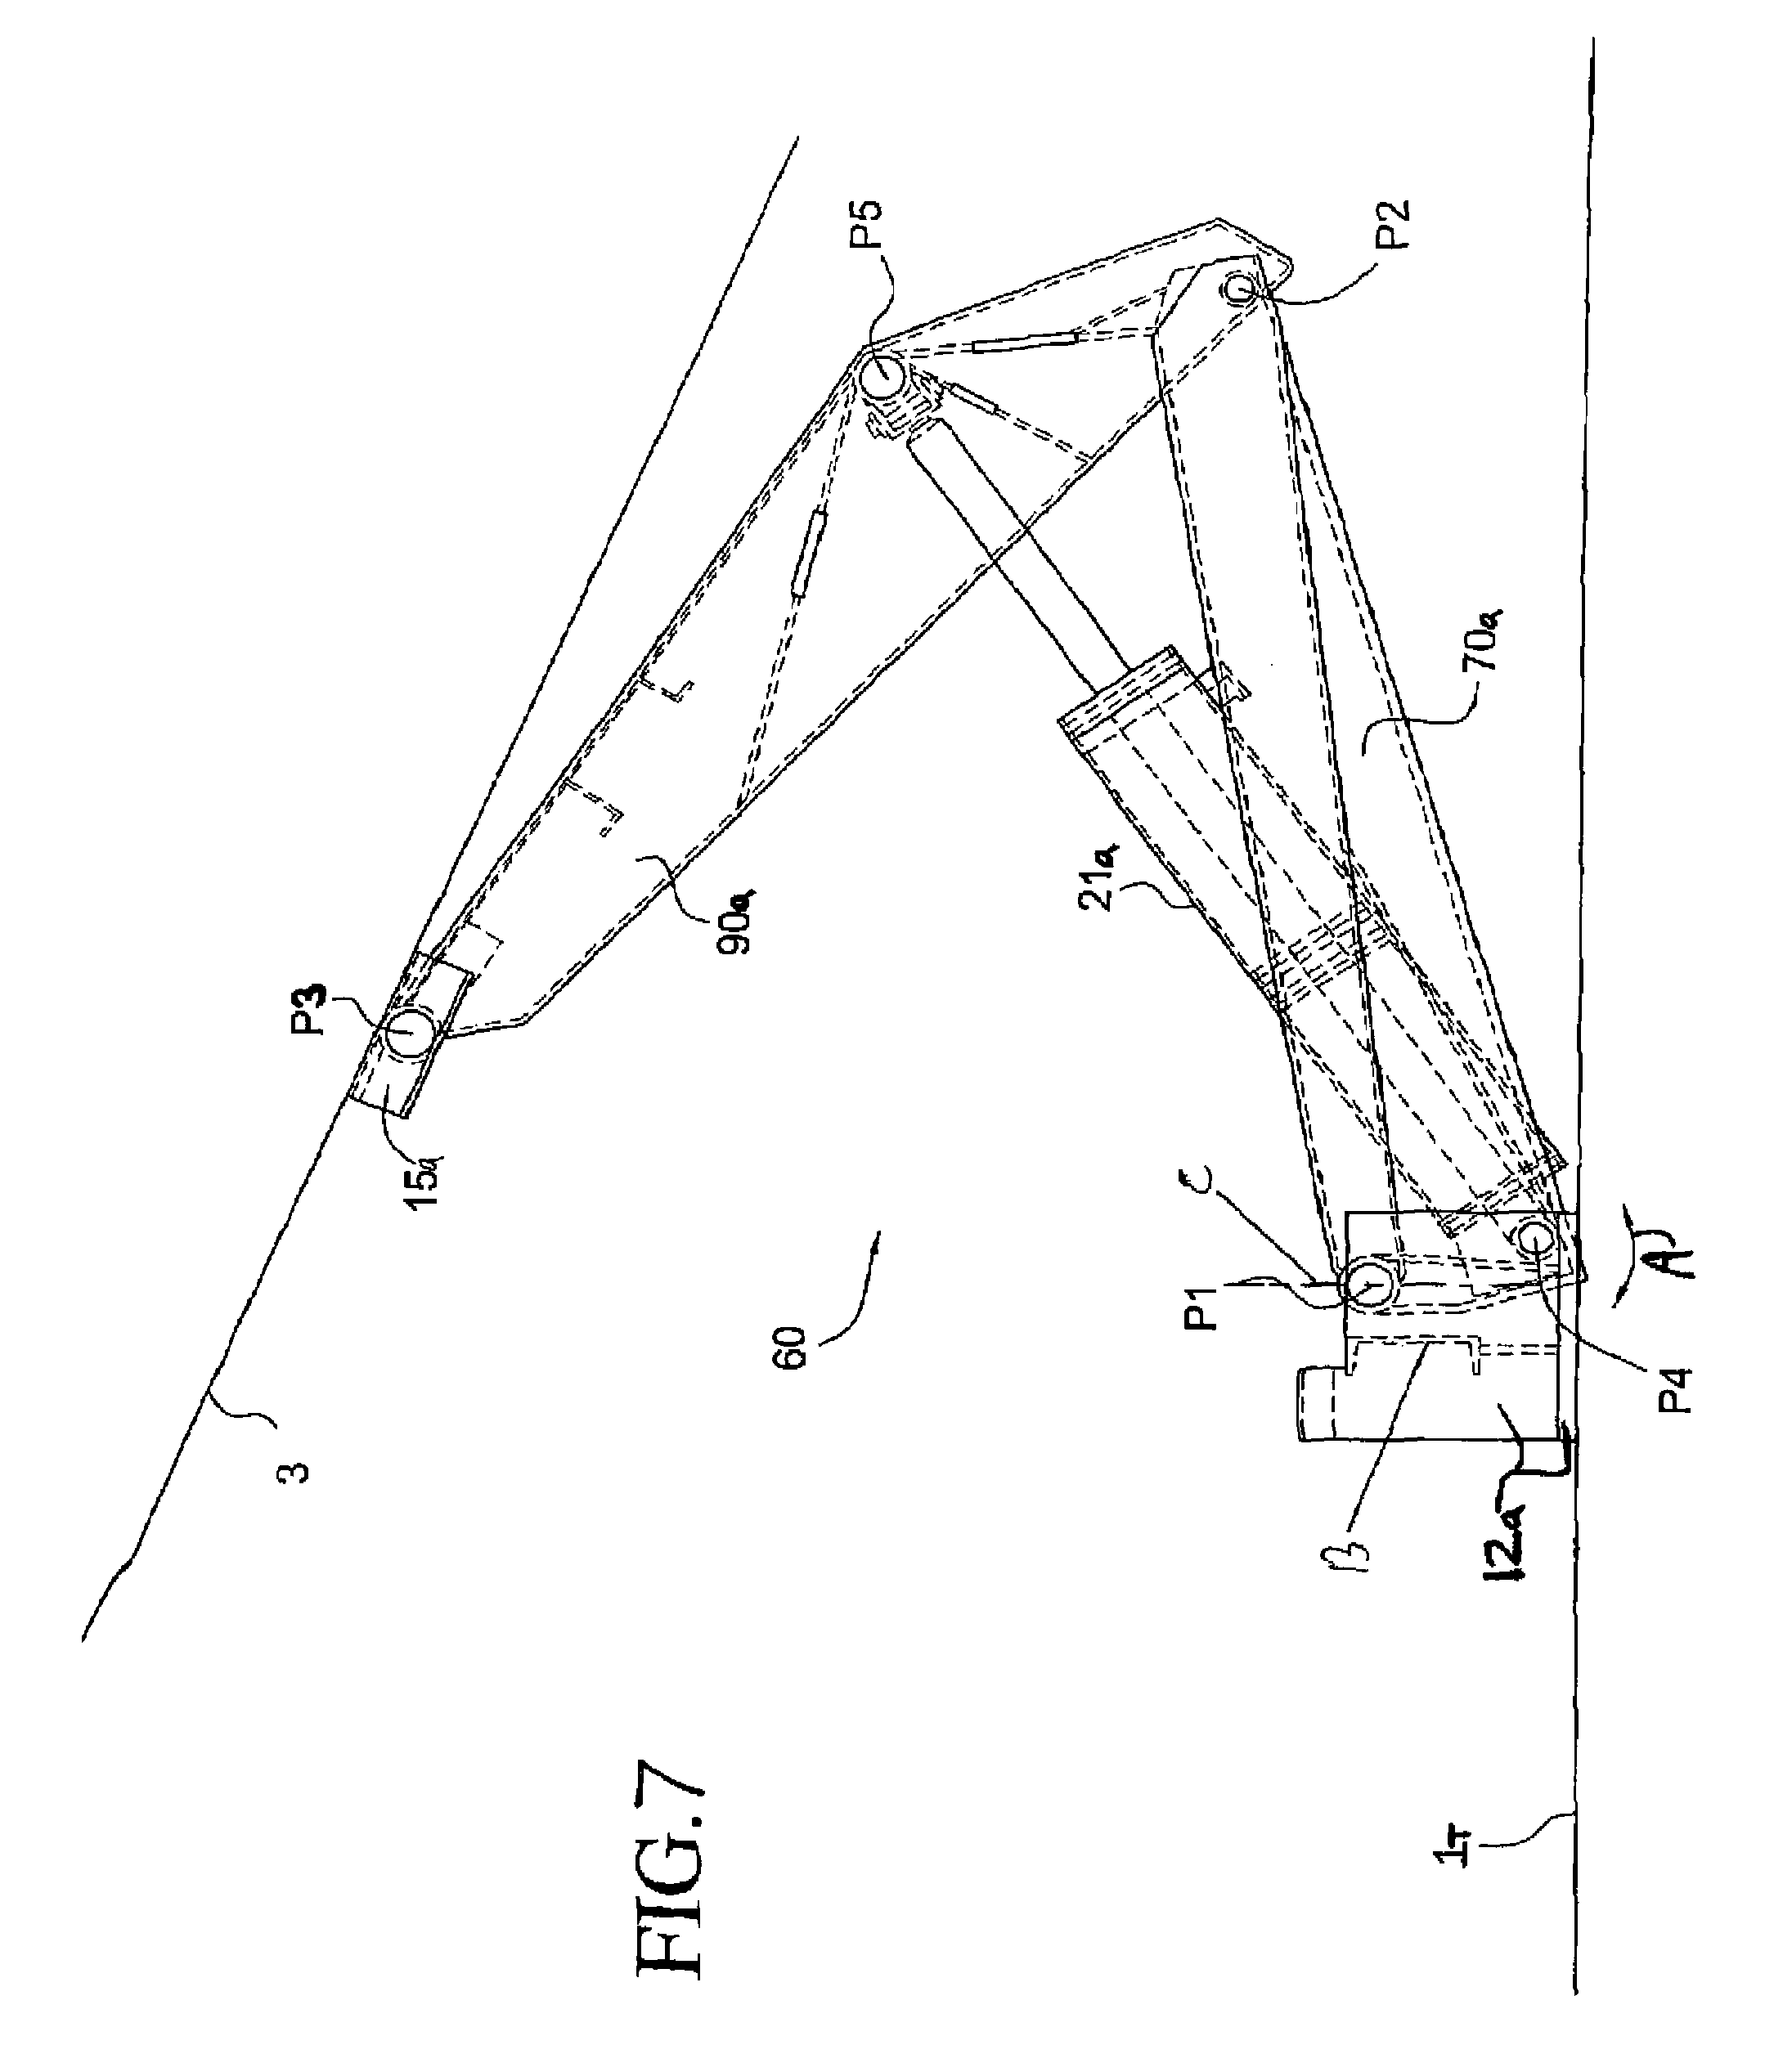 Drawing Arm Lifts : Patent us hoist google patents